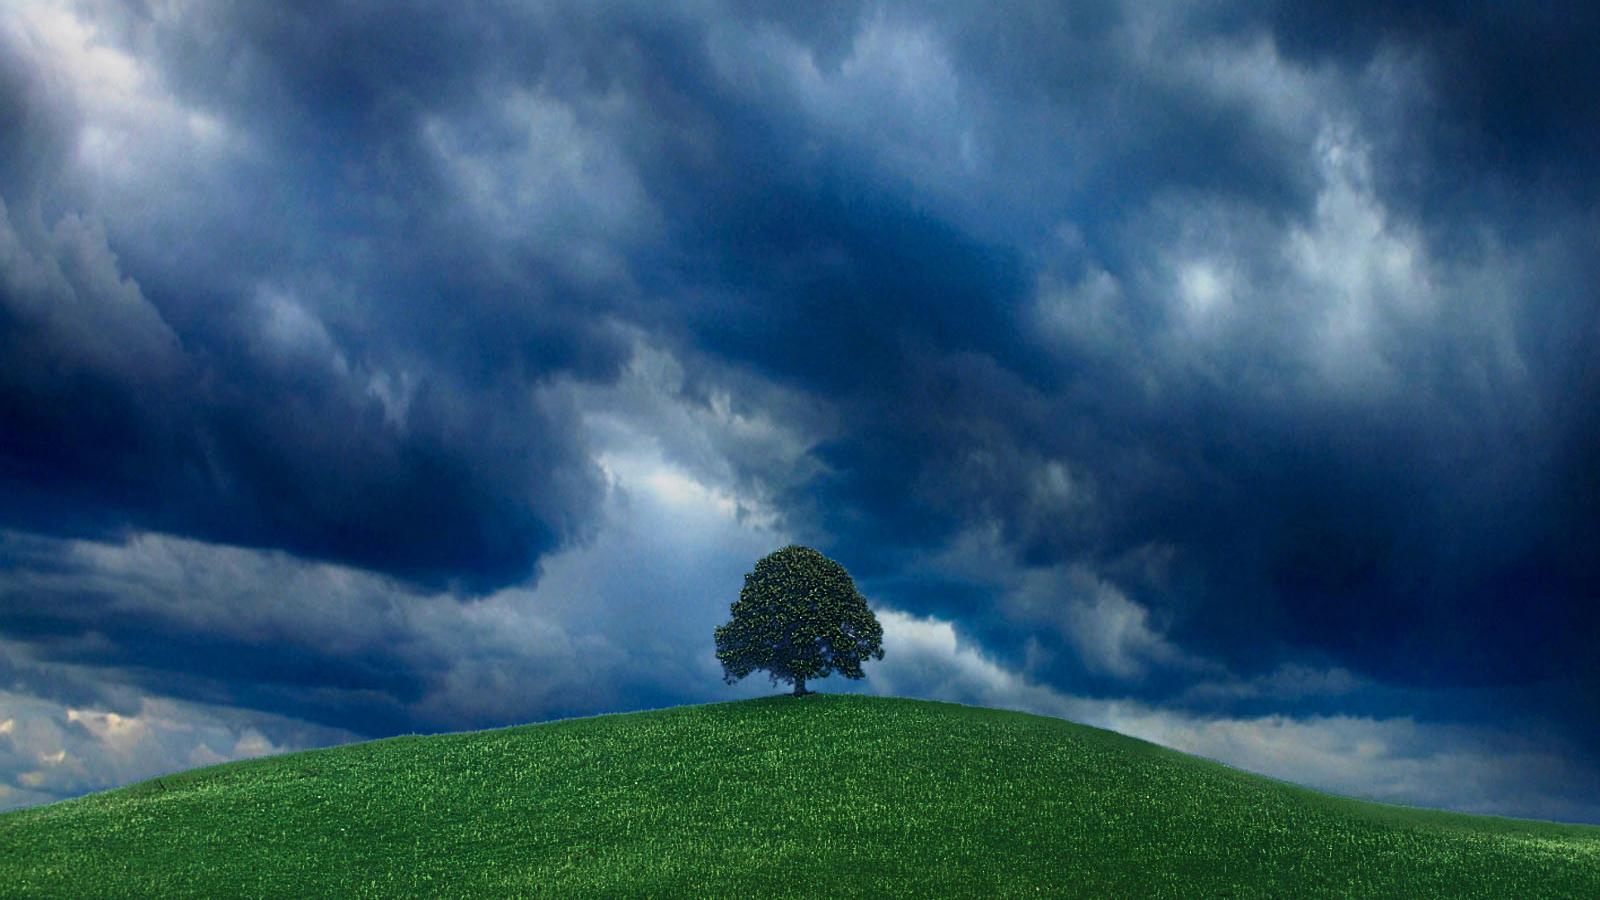 Wallpaper Before Thunderstorm 1600 x 900 widescreen Desktop 1600x900